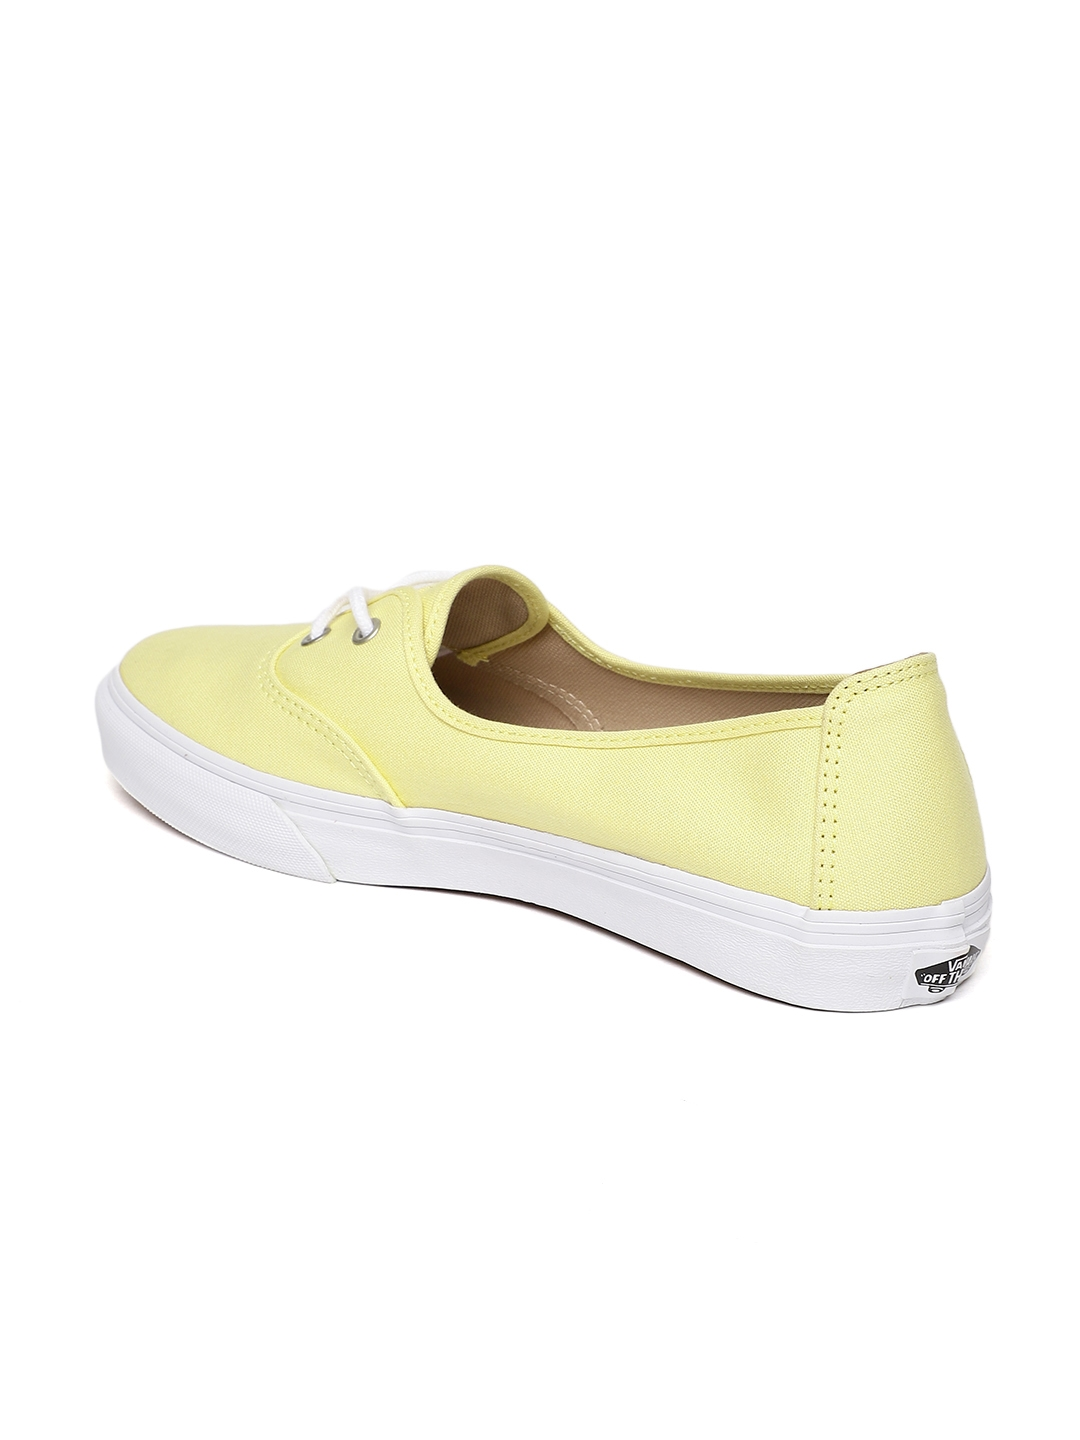 6cc2461b85c Buy Vans Unisex Yellow Solana Sneakers - Casual Shoes for Unisex ...